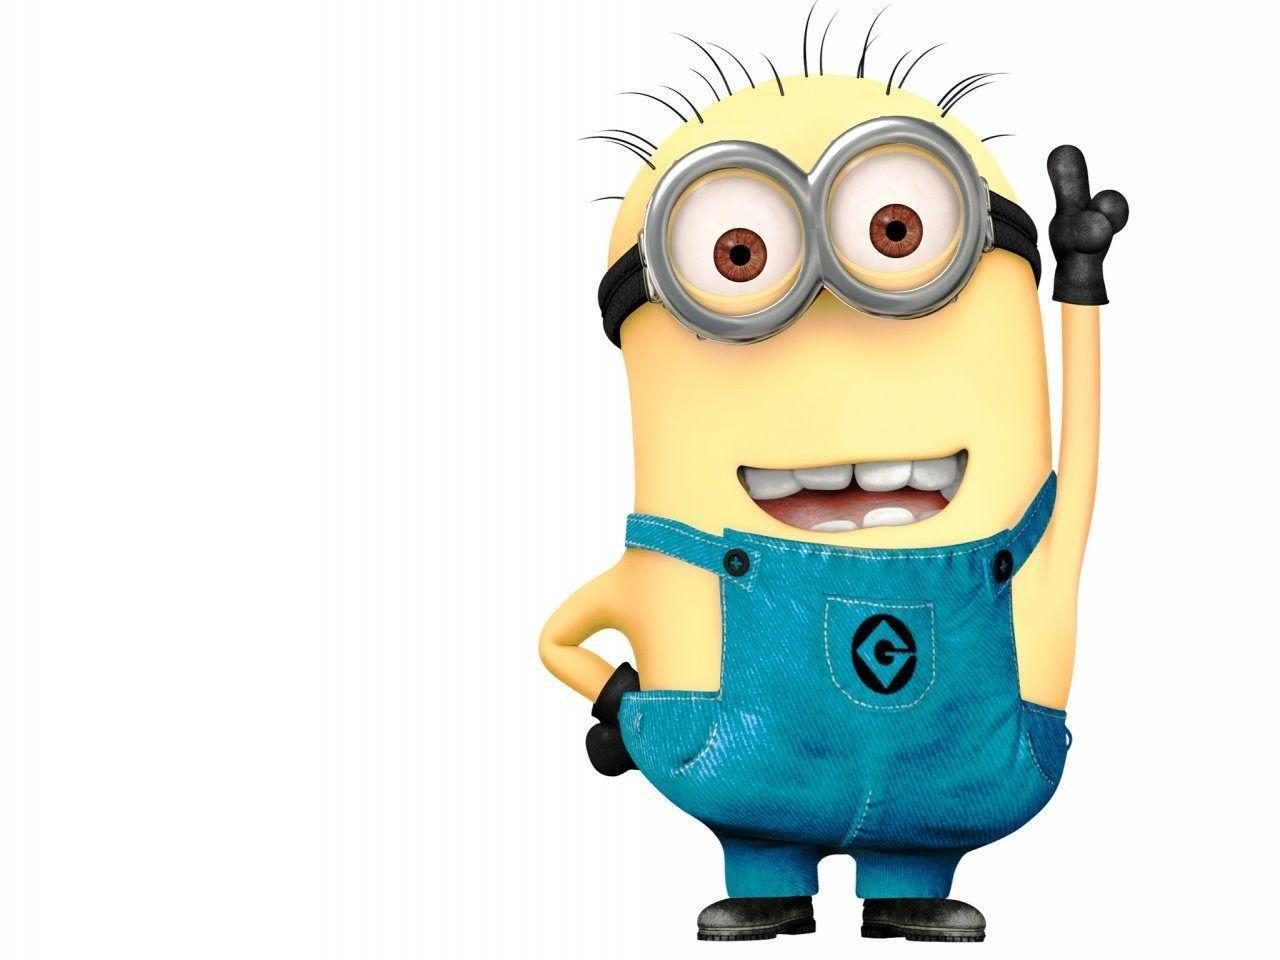 Despicable Me 3 Minions Wallpapers - Wallpaper Cave